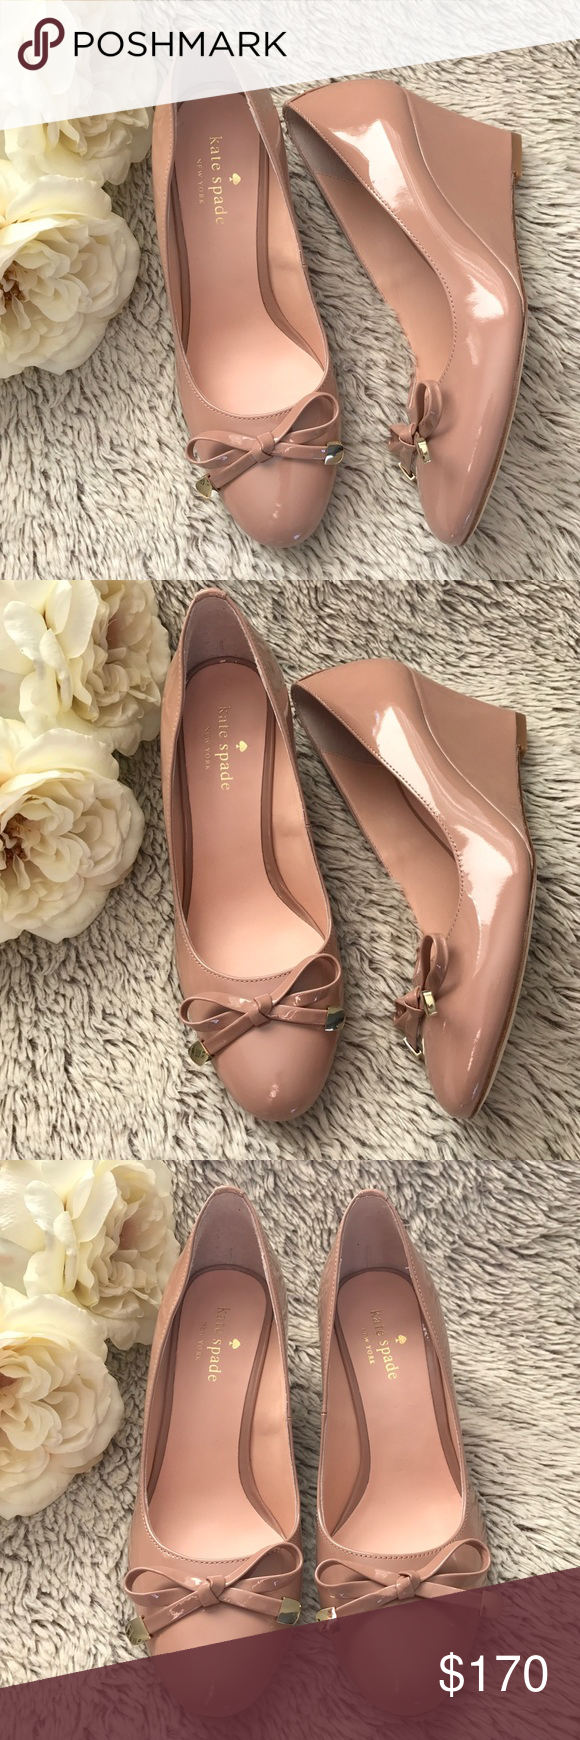 9cd5fd52446f ▫️kate spade▫️Nude Patent Leather Wedges▫️NIB Gorgeous nude (fawn) patent